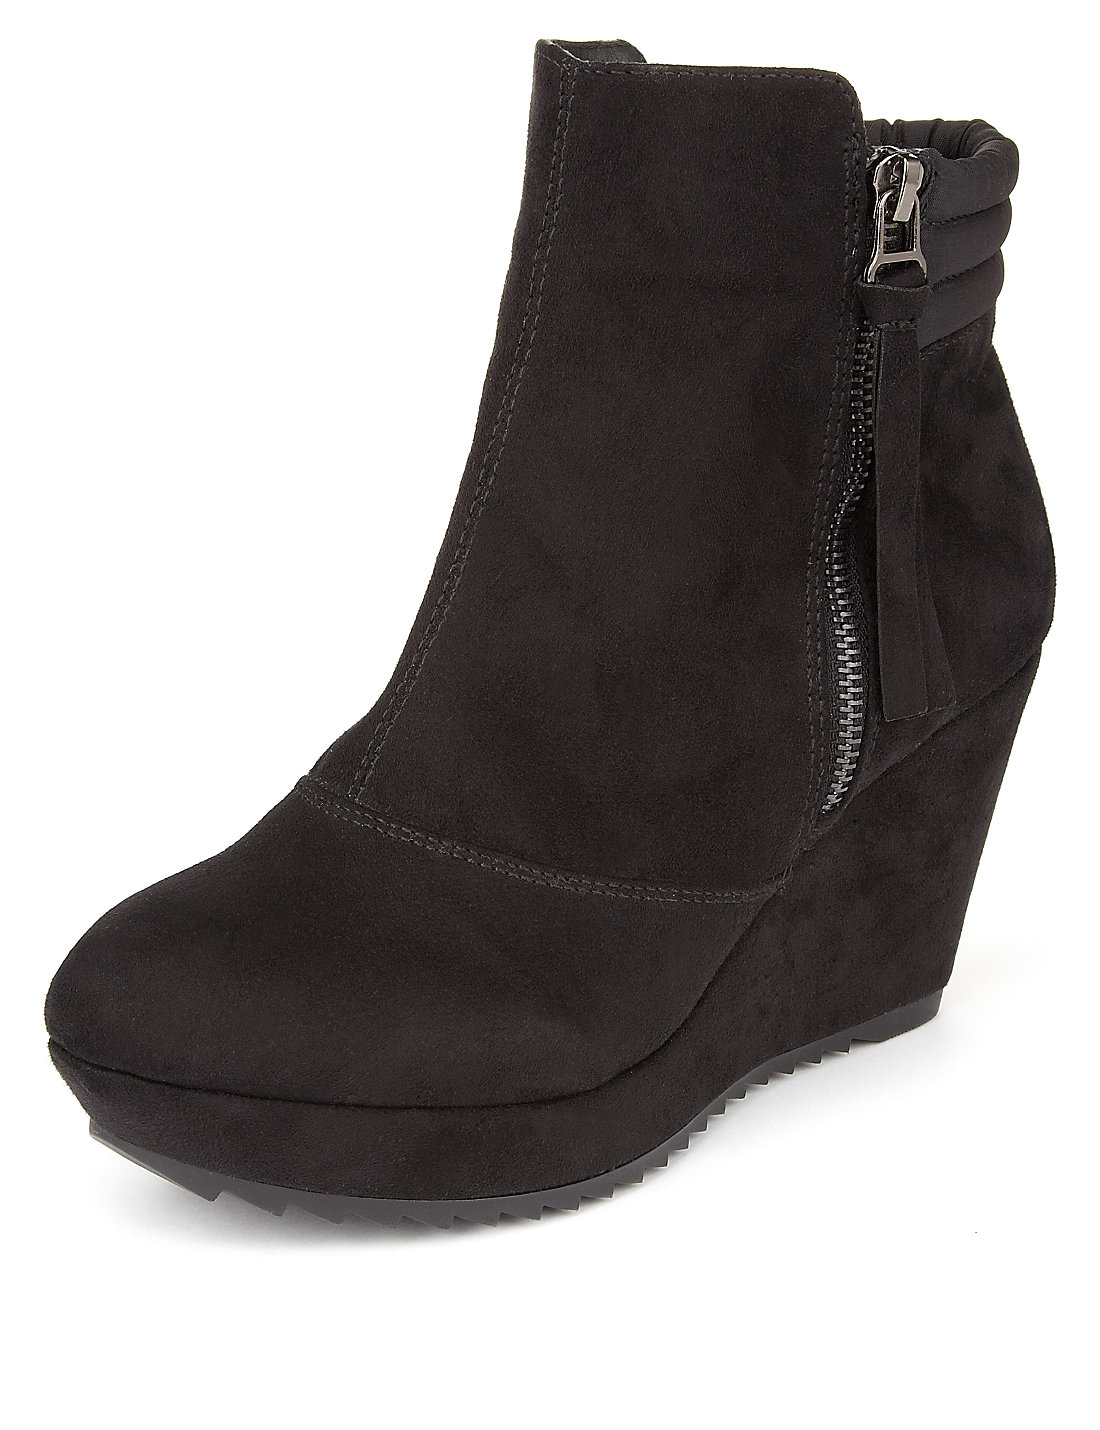 Mock Suede Platform Wedge Ankle Boots with Insolia® | M&S